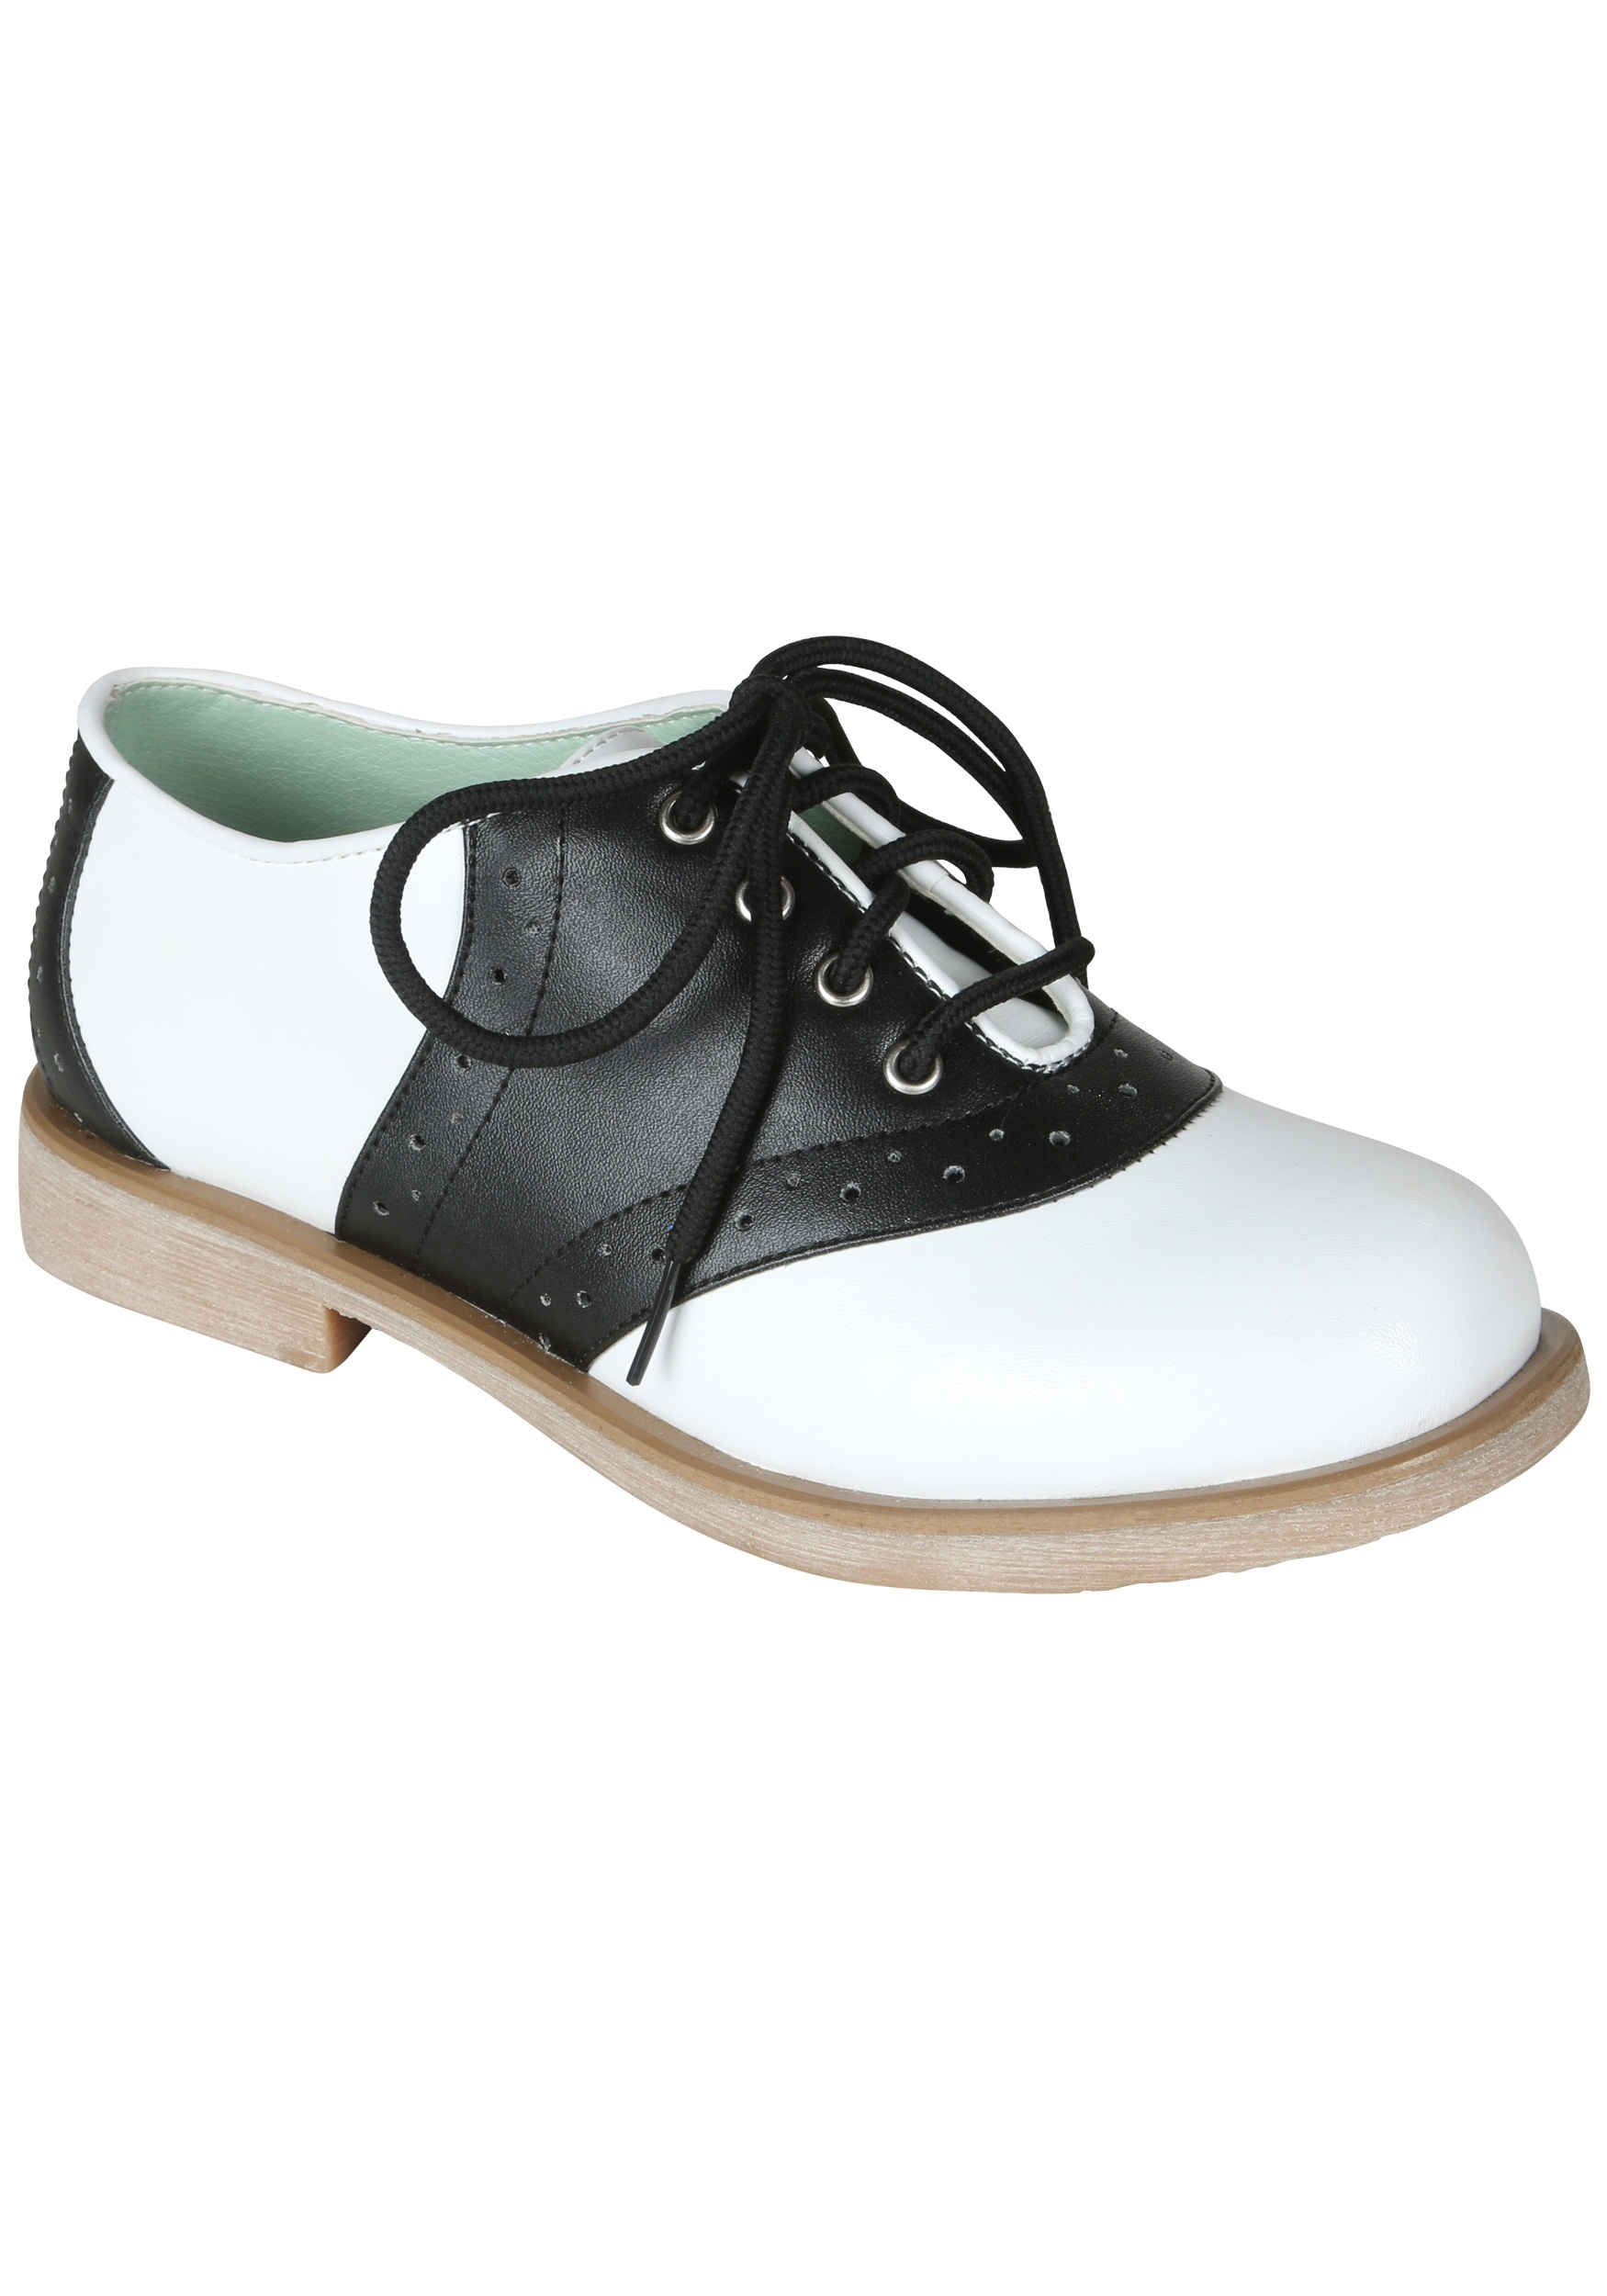 1950s Girl Shoes Kids Saddle Shoes